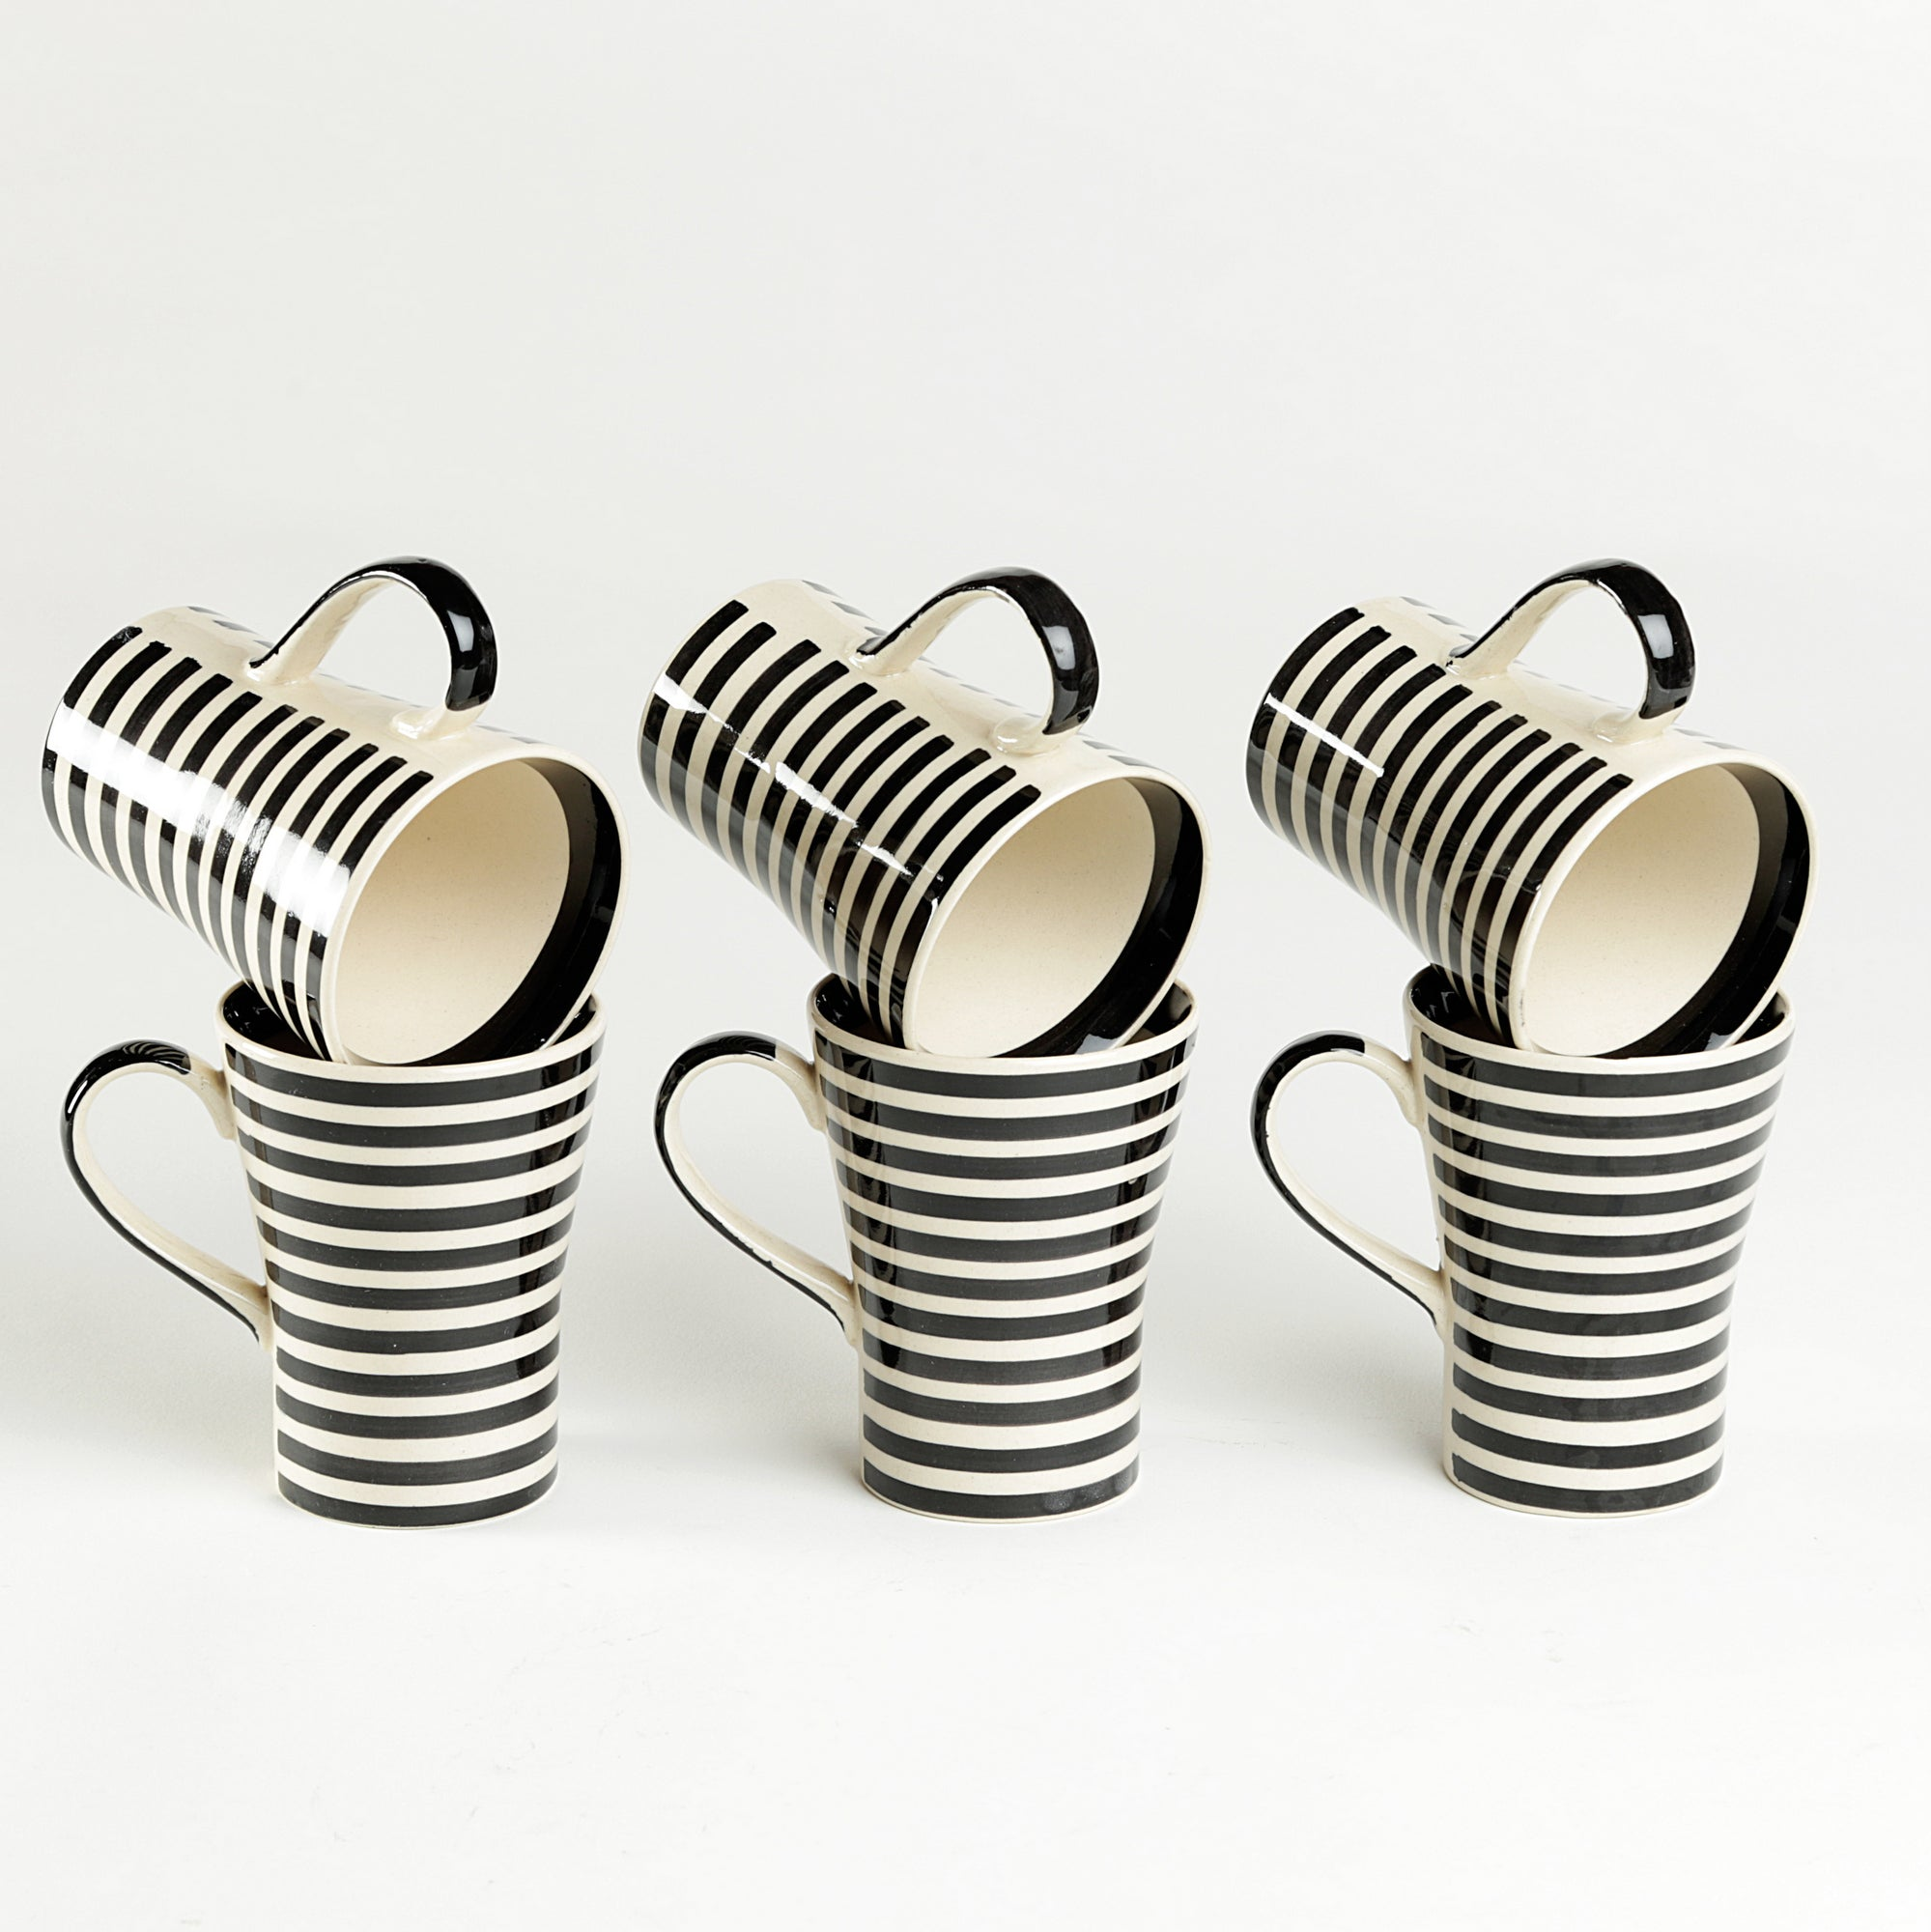 White and Black Cone Coffee/Milk Mug - Set of 6 pcs